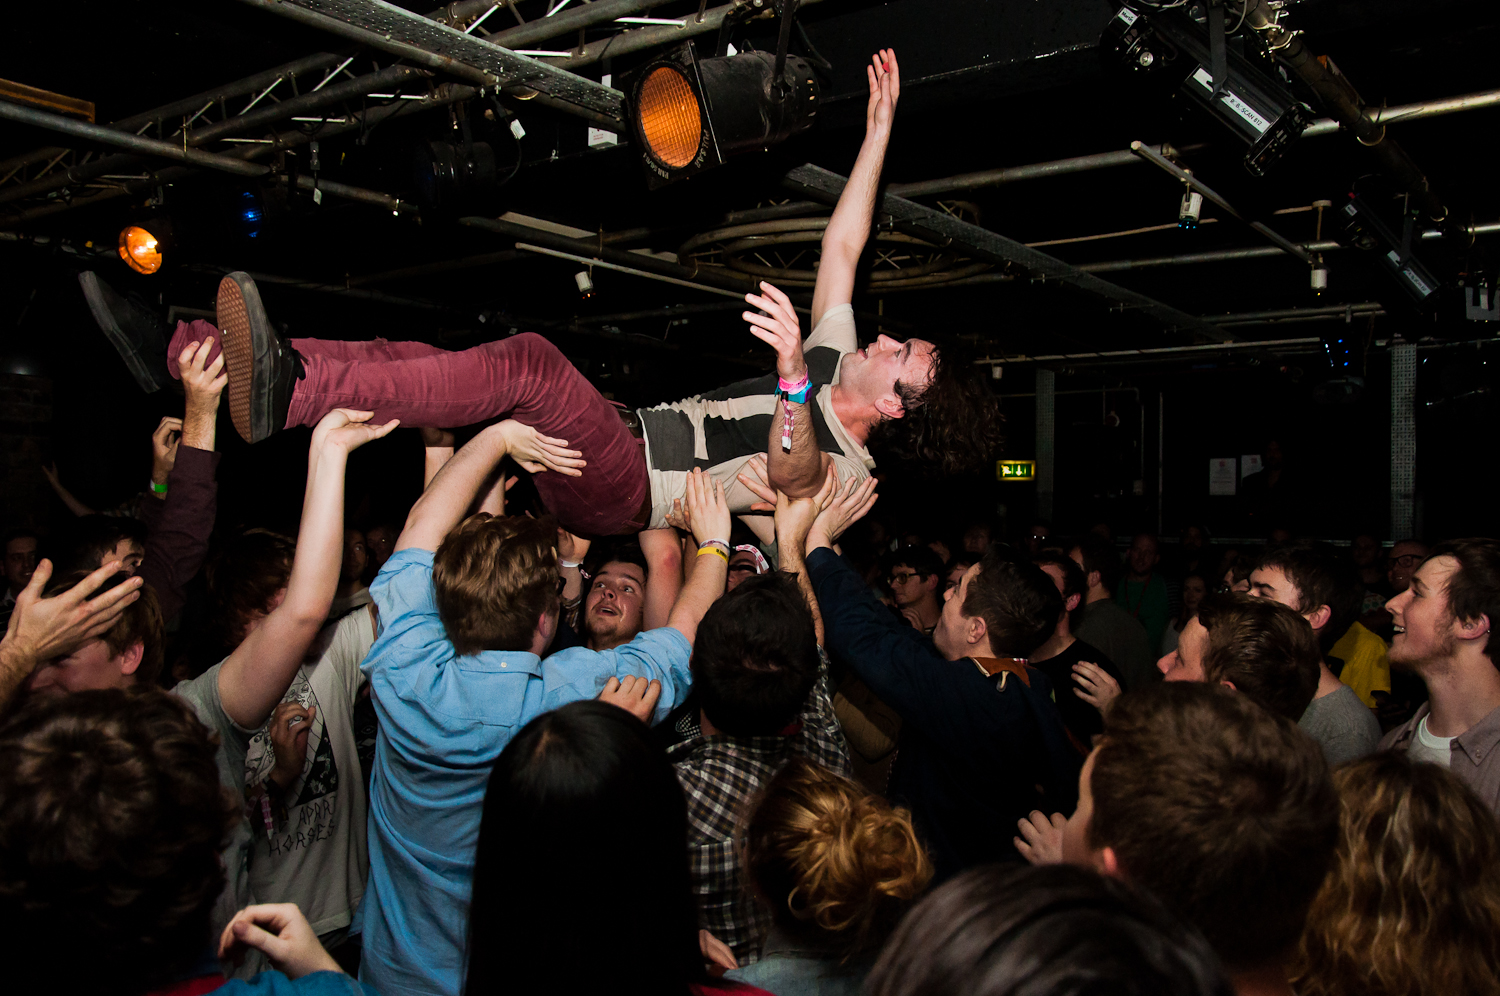 South Wales Live Music Scene: Where does it go from here?